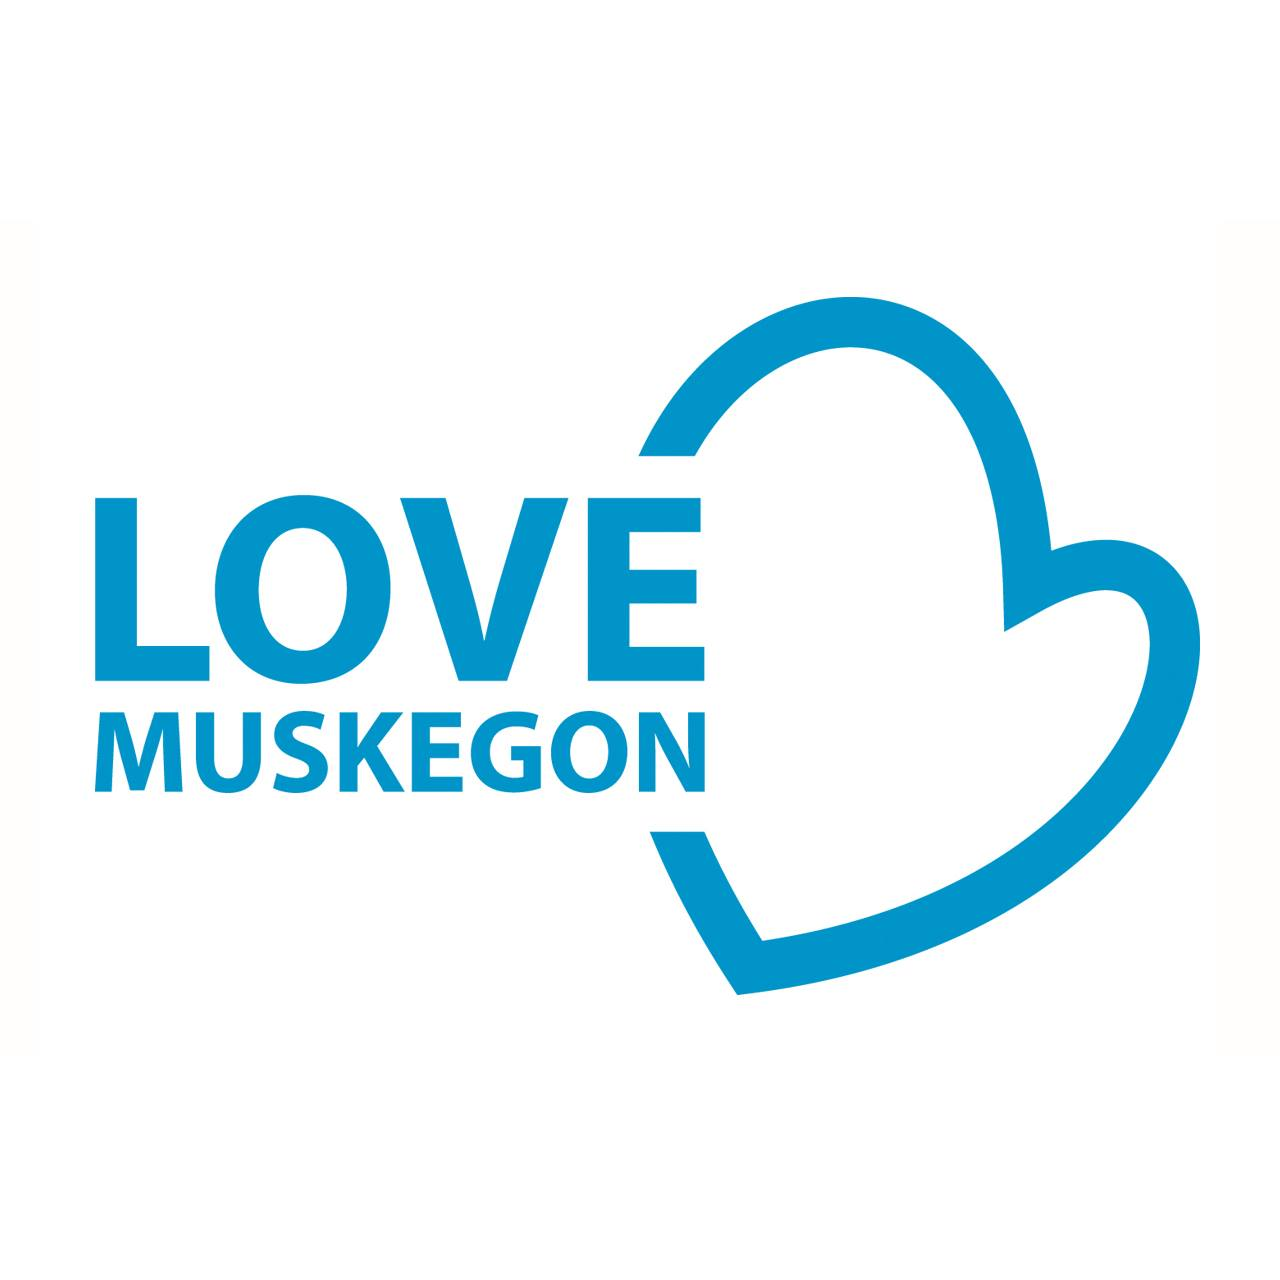 Community Foundation for Muskegon County - Gilana's Fund is hosted by CFFMC, whose mission is to engage donors and connect them with opportunities to make a lasting impact, build community endowment, provide leadership on key issues, and make grants that reflect the communities we serve.